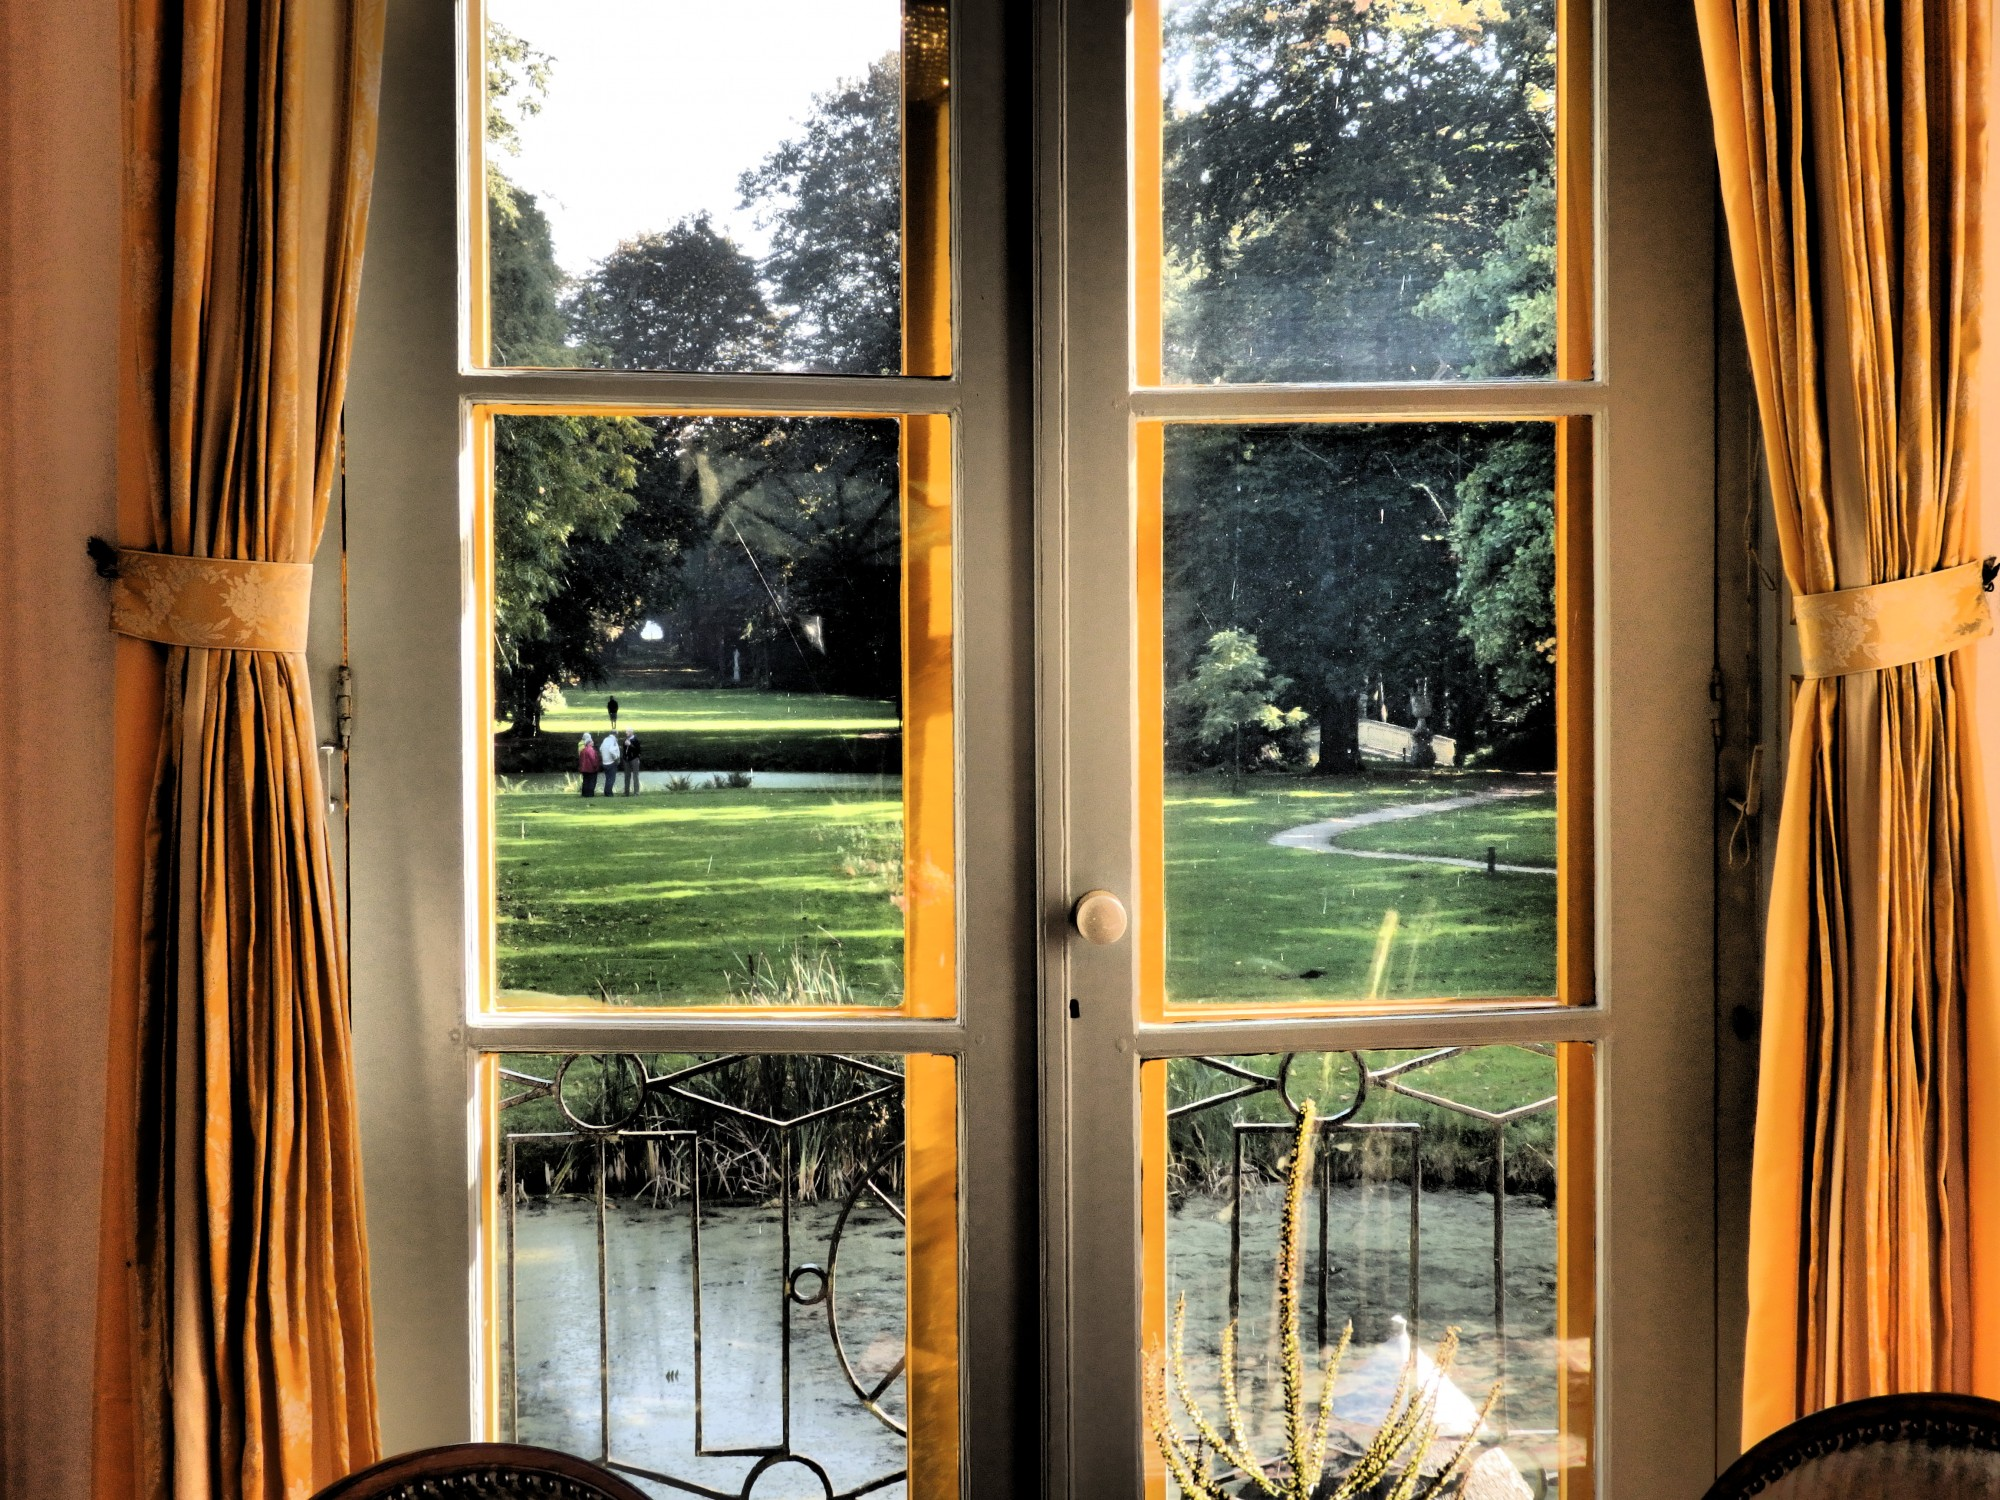 the view down the length of the garden as seen from inside the house, in Fraeylemaborg, Slochteren, the Netherlands